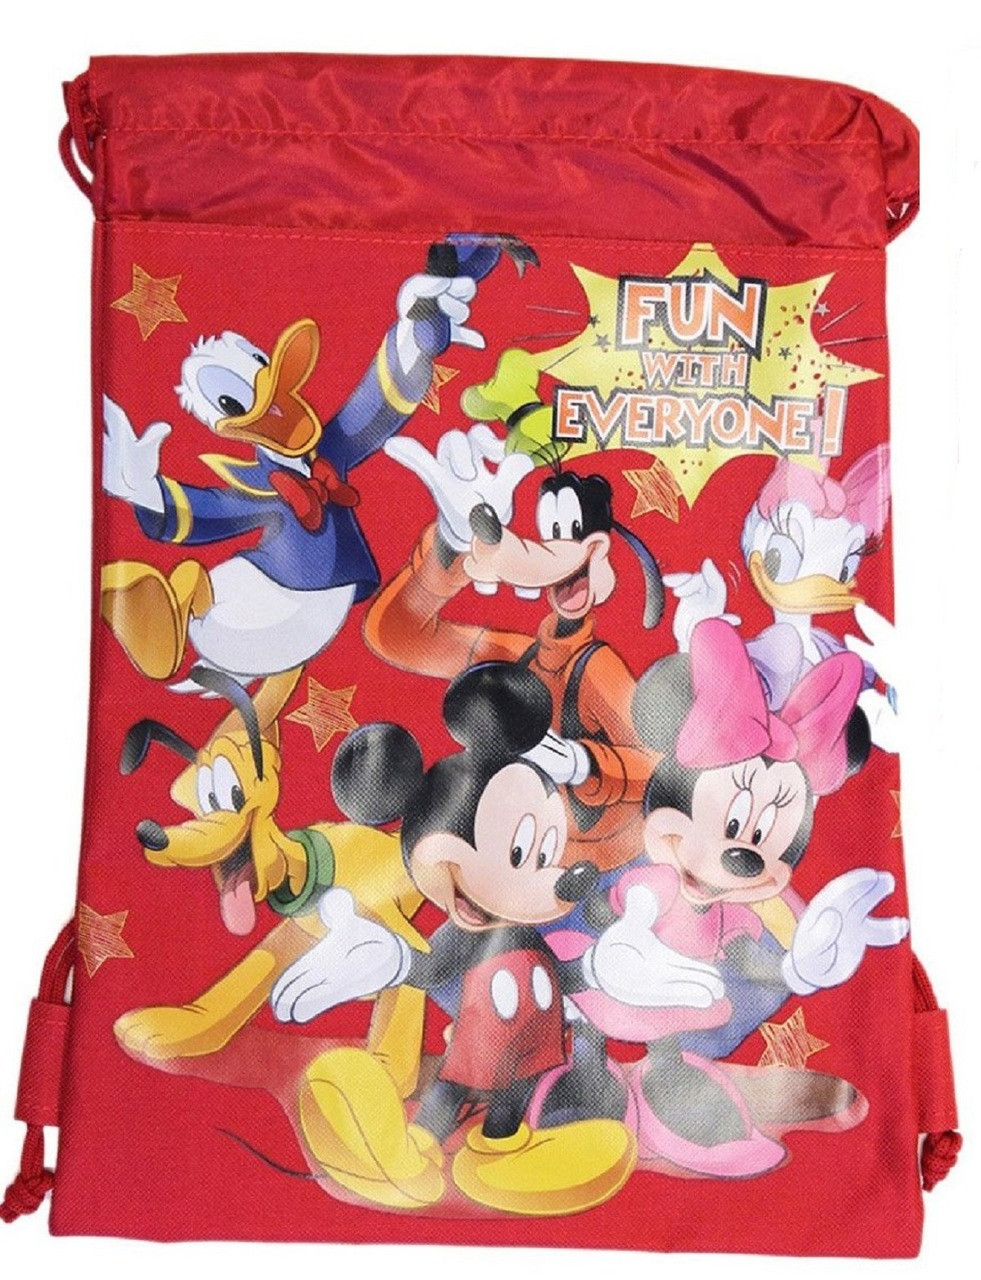 Drawstring Bag - Mickey Mouse and Friends Red Cloth String Bag